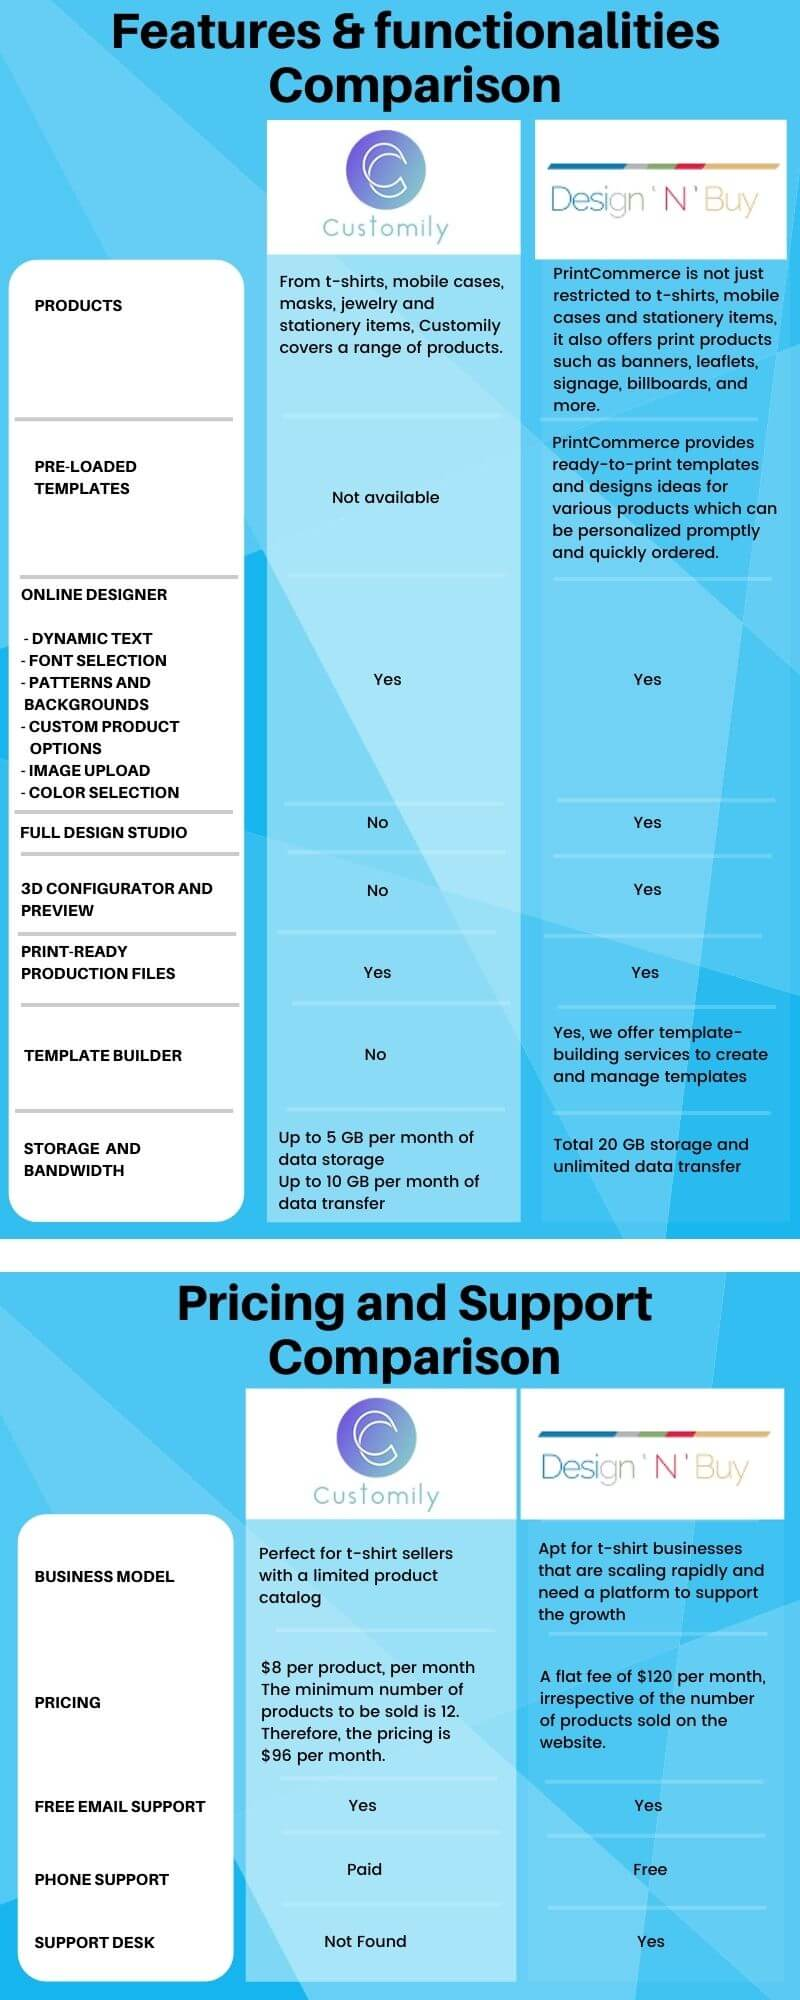 Customily and DesignNbuy PrintCommerce Comparison